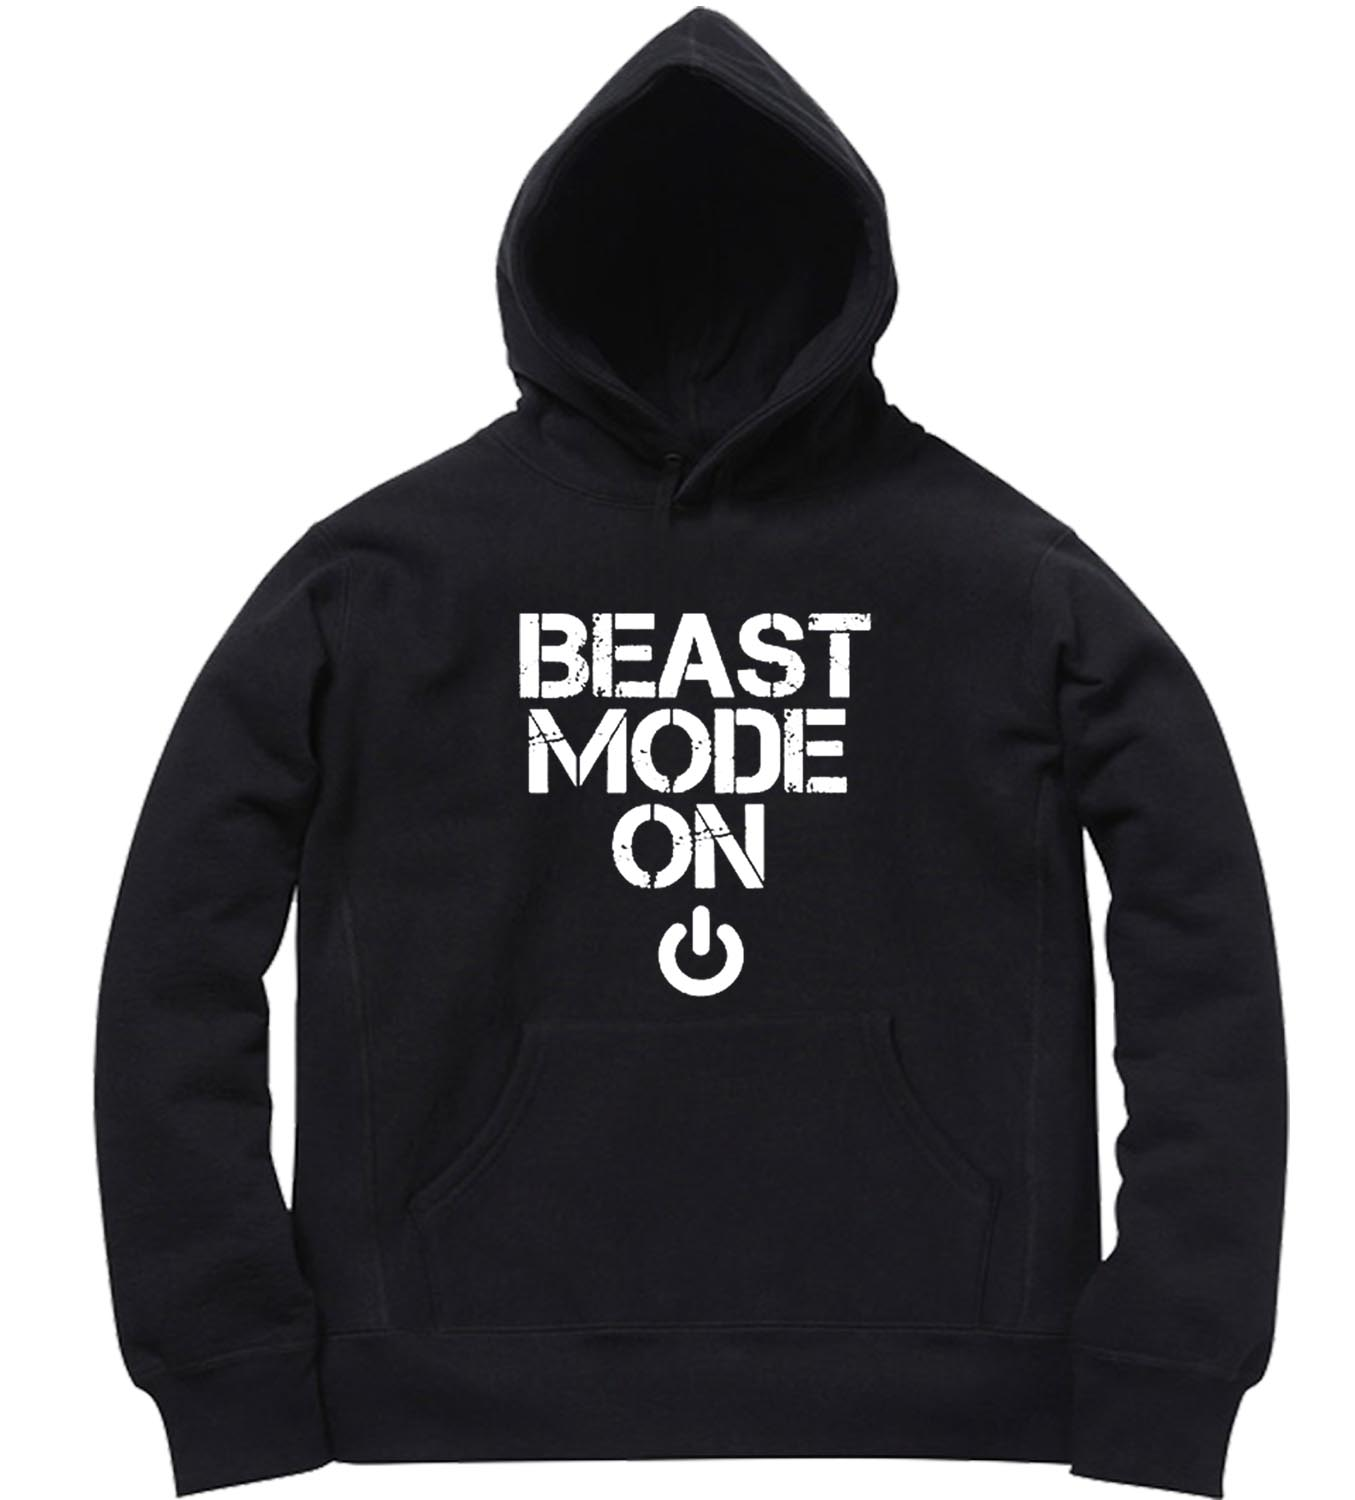 unisex premium hoodies beast mode design